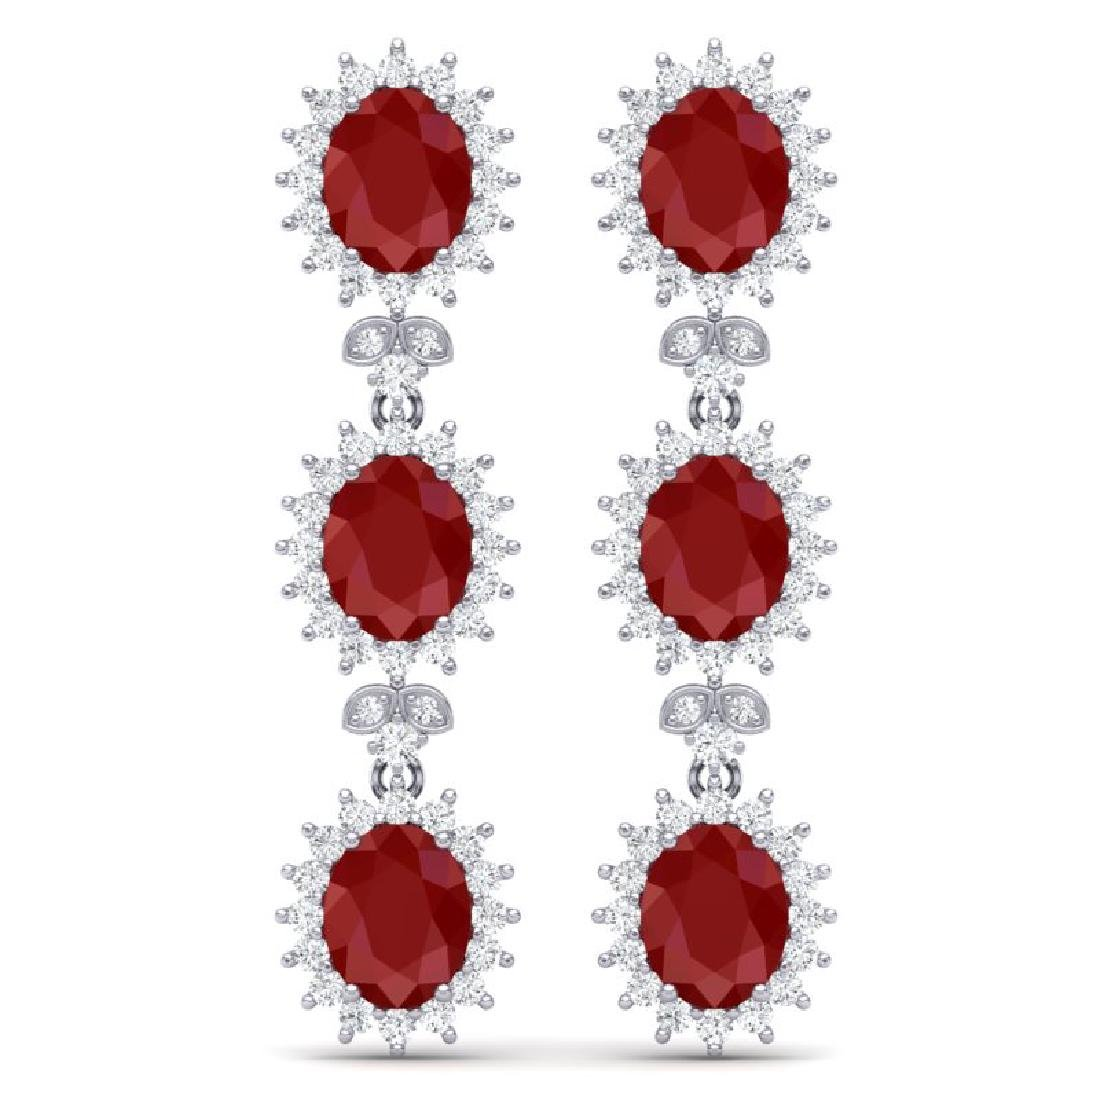 24.52 CTW Royalty Designer Ruby & VS Diamond Earrings